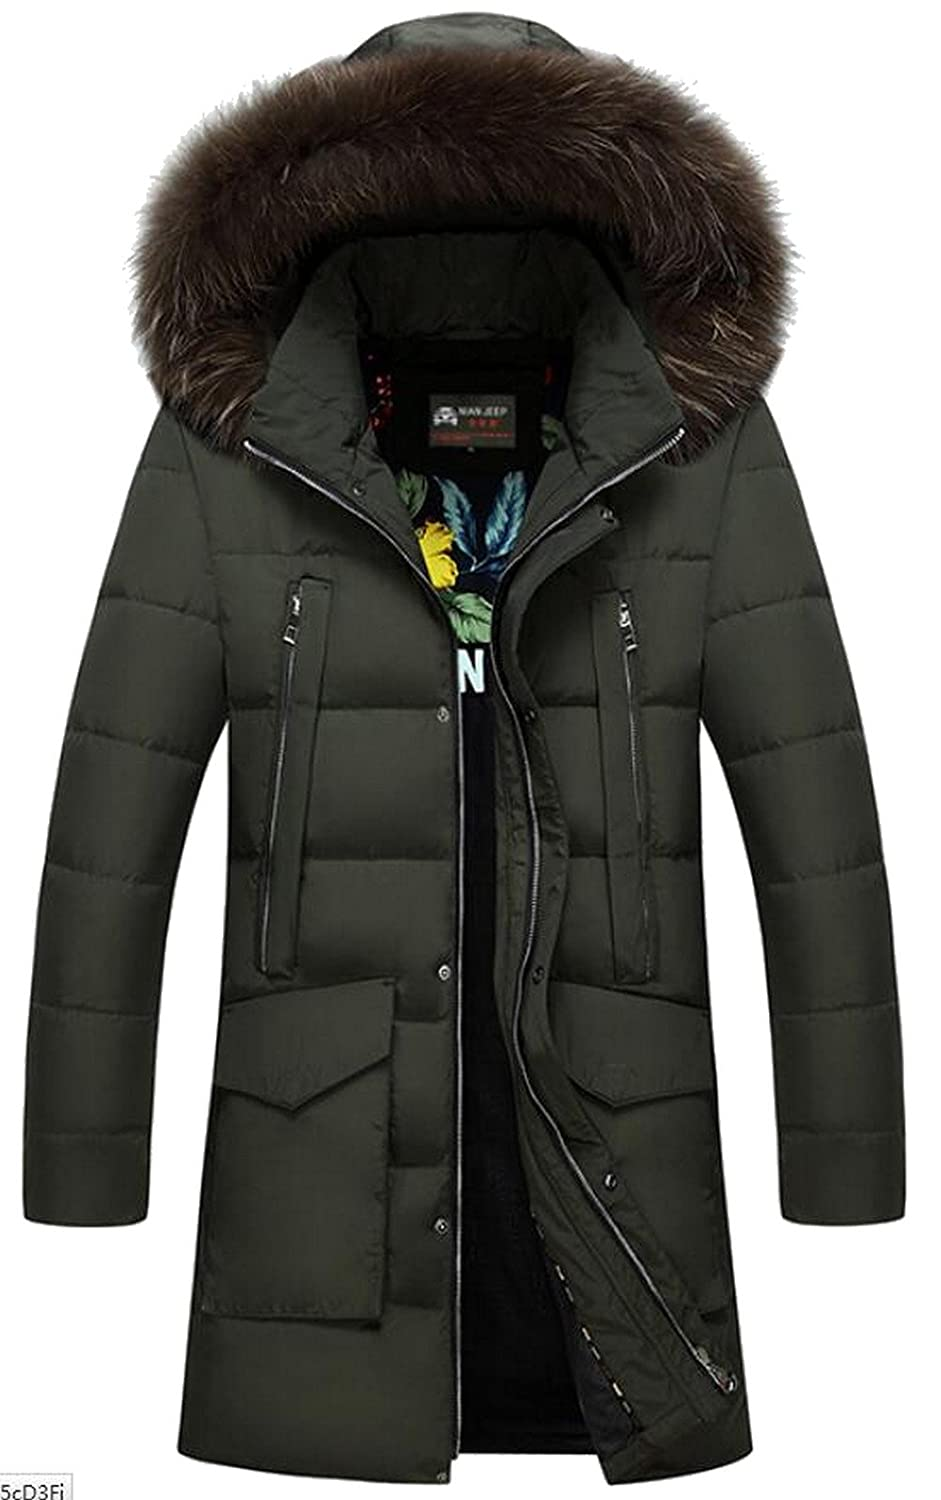 JIAX Men's Warm Winter Duck Down Hooded High-End Fur Long Jacket Parka